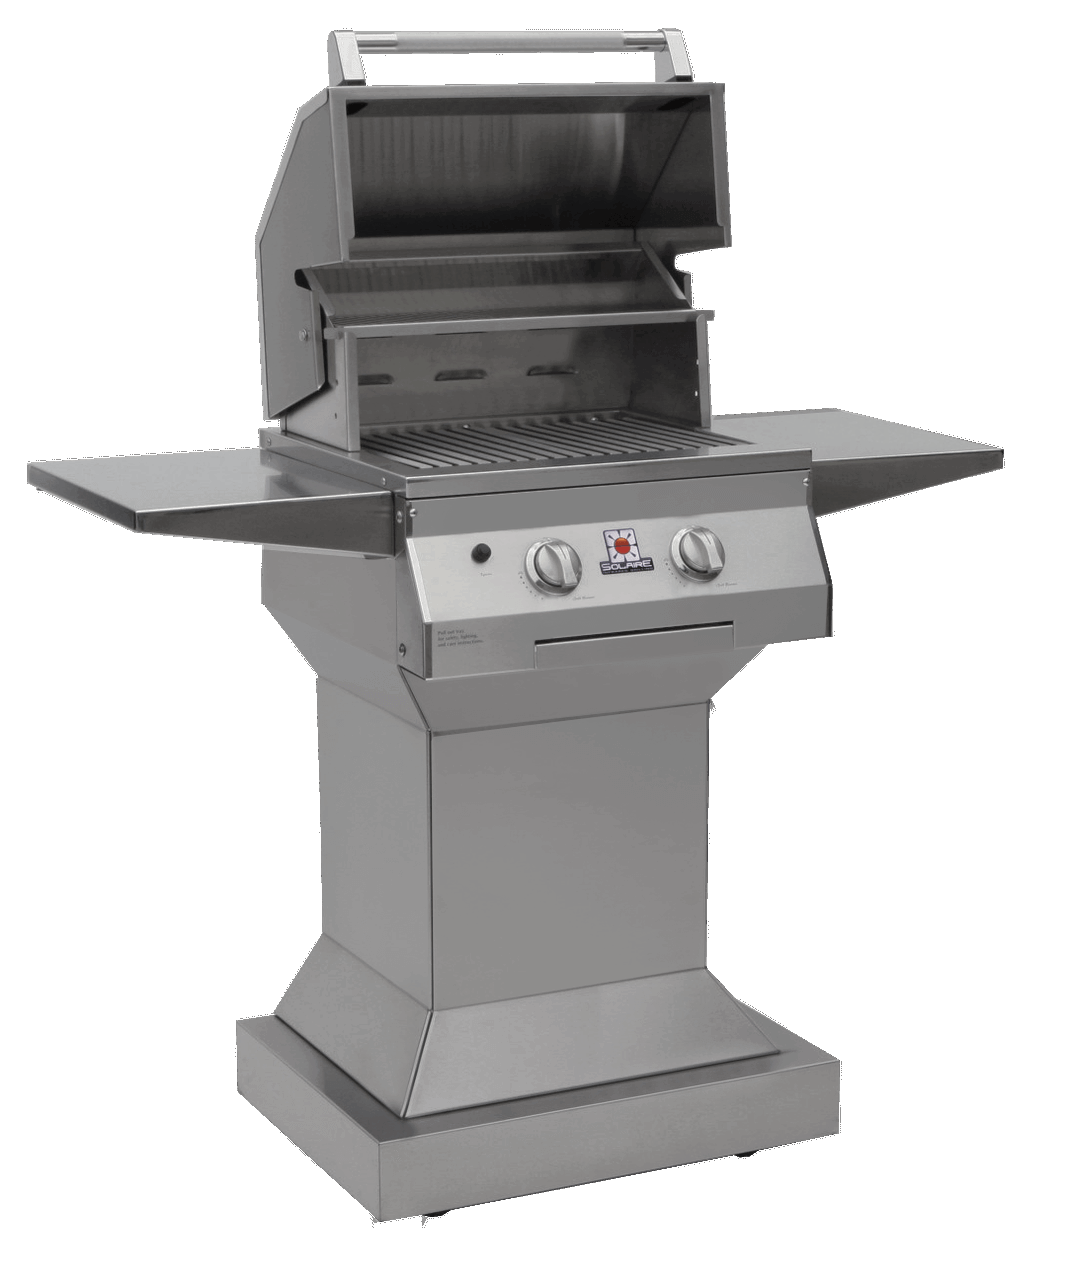 Solaire 21 Inch Grill, Angular Pedestal, Front View, Hood Up, Shelves Up